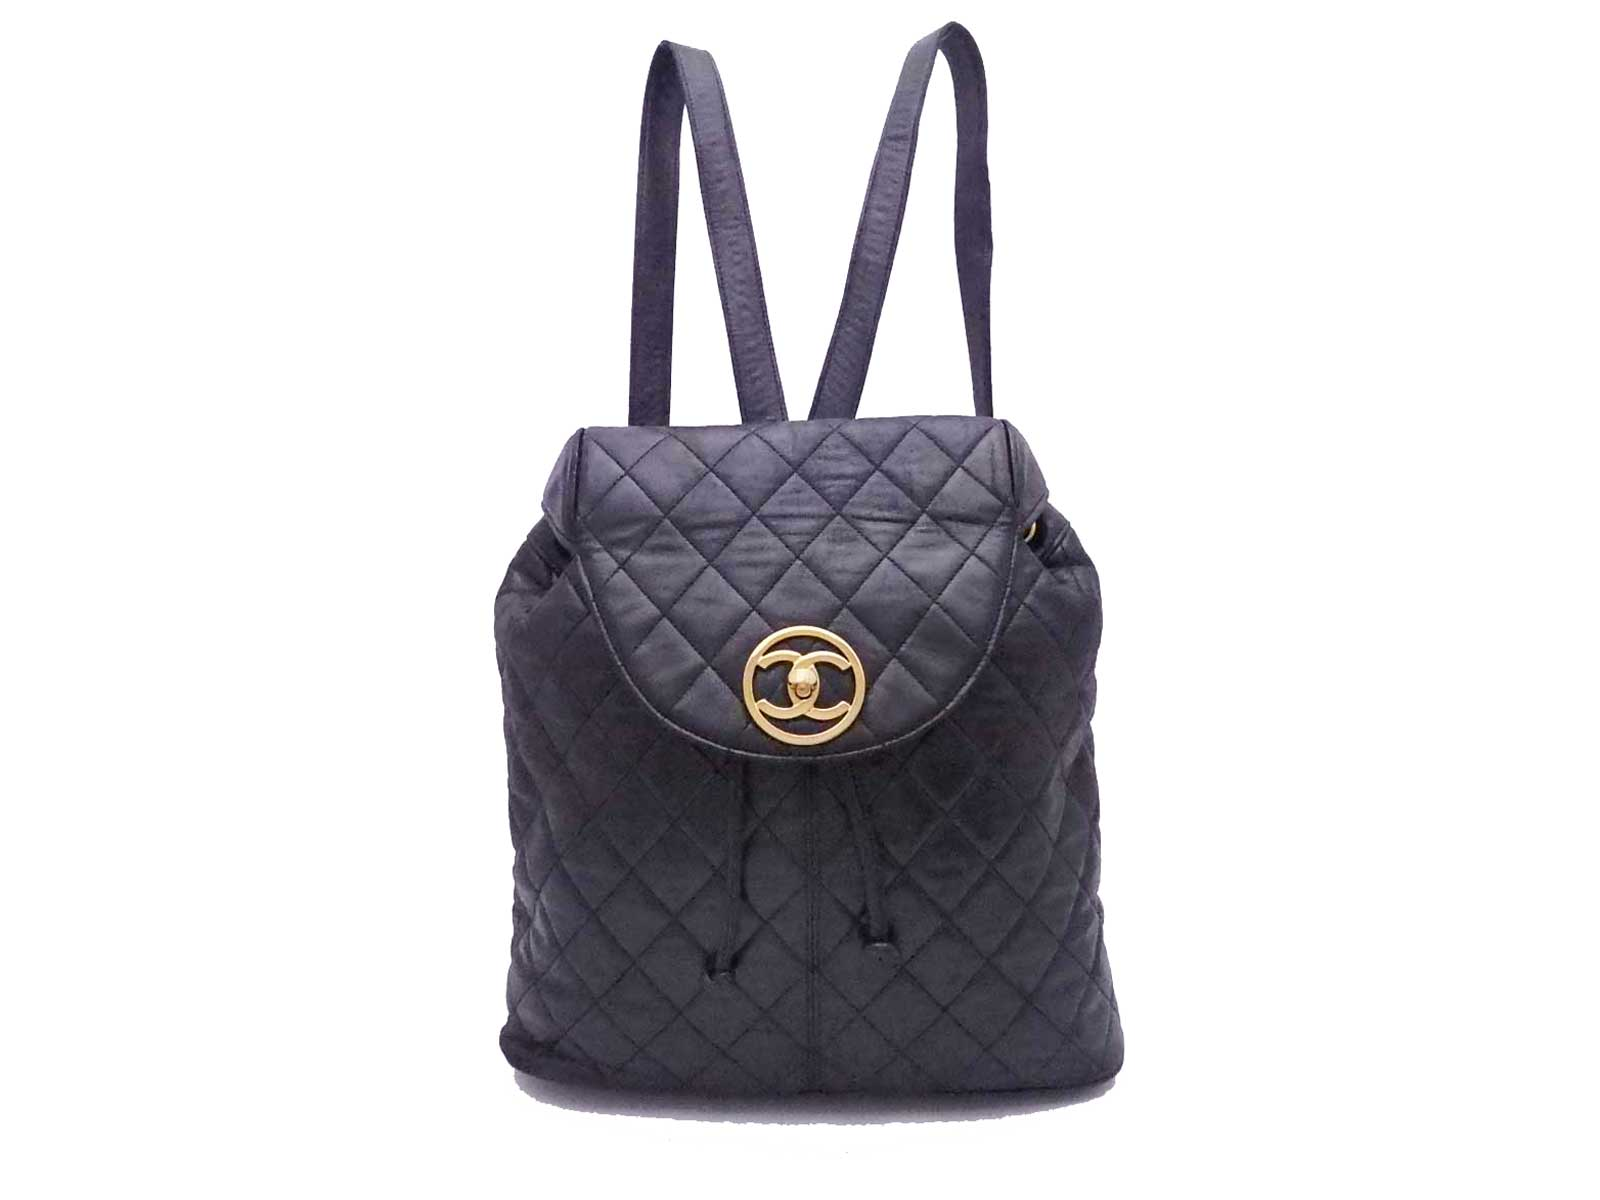 b0a423e25eb3 Details about  SALE from  2750 to  2475  CHANEL CC Logo Matelasse Backpack  Black Gold - e35291